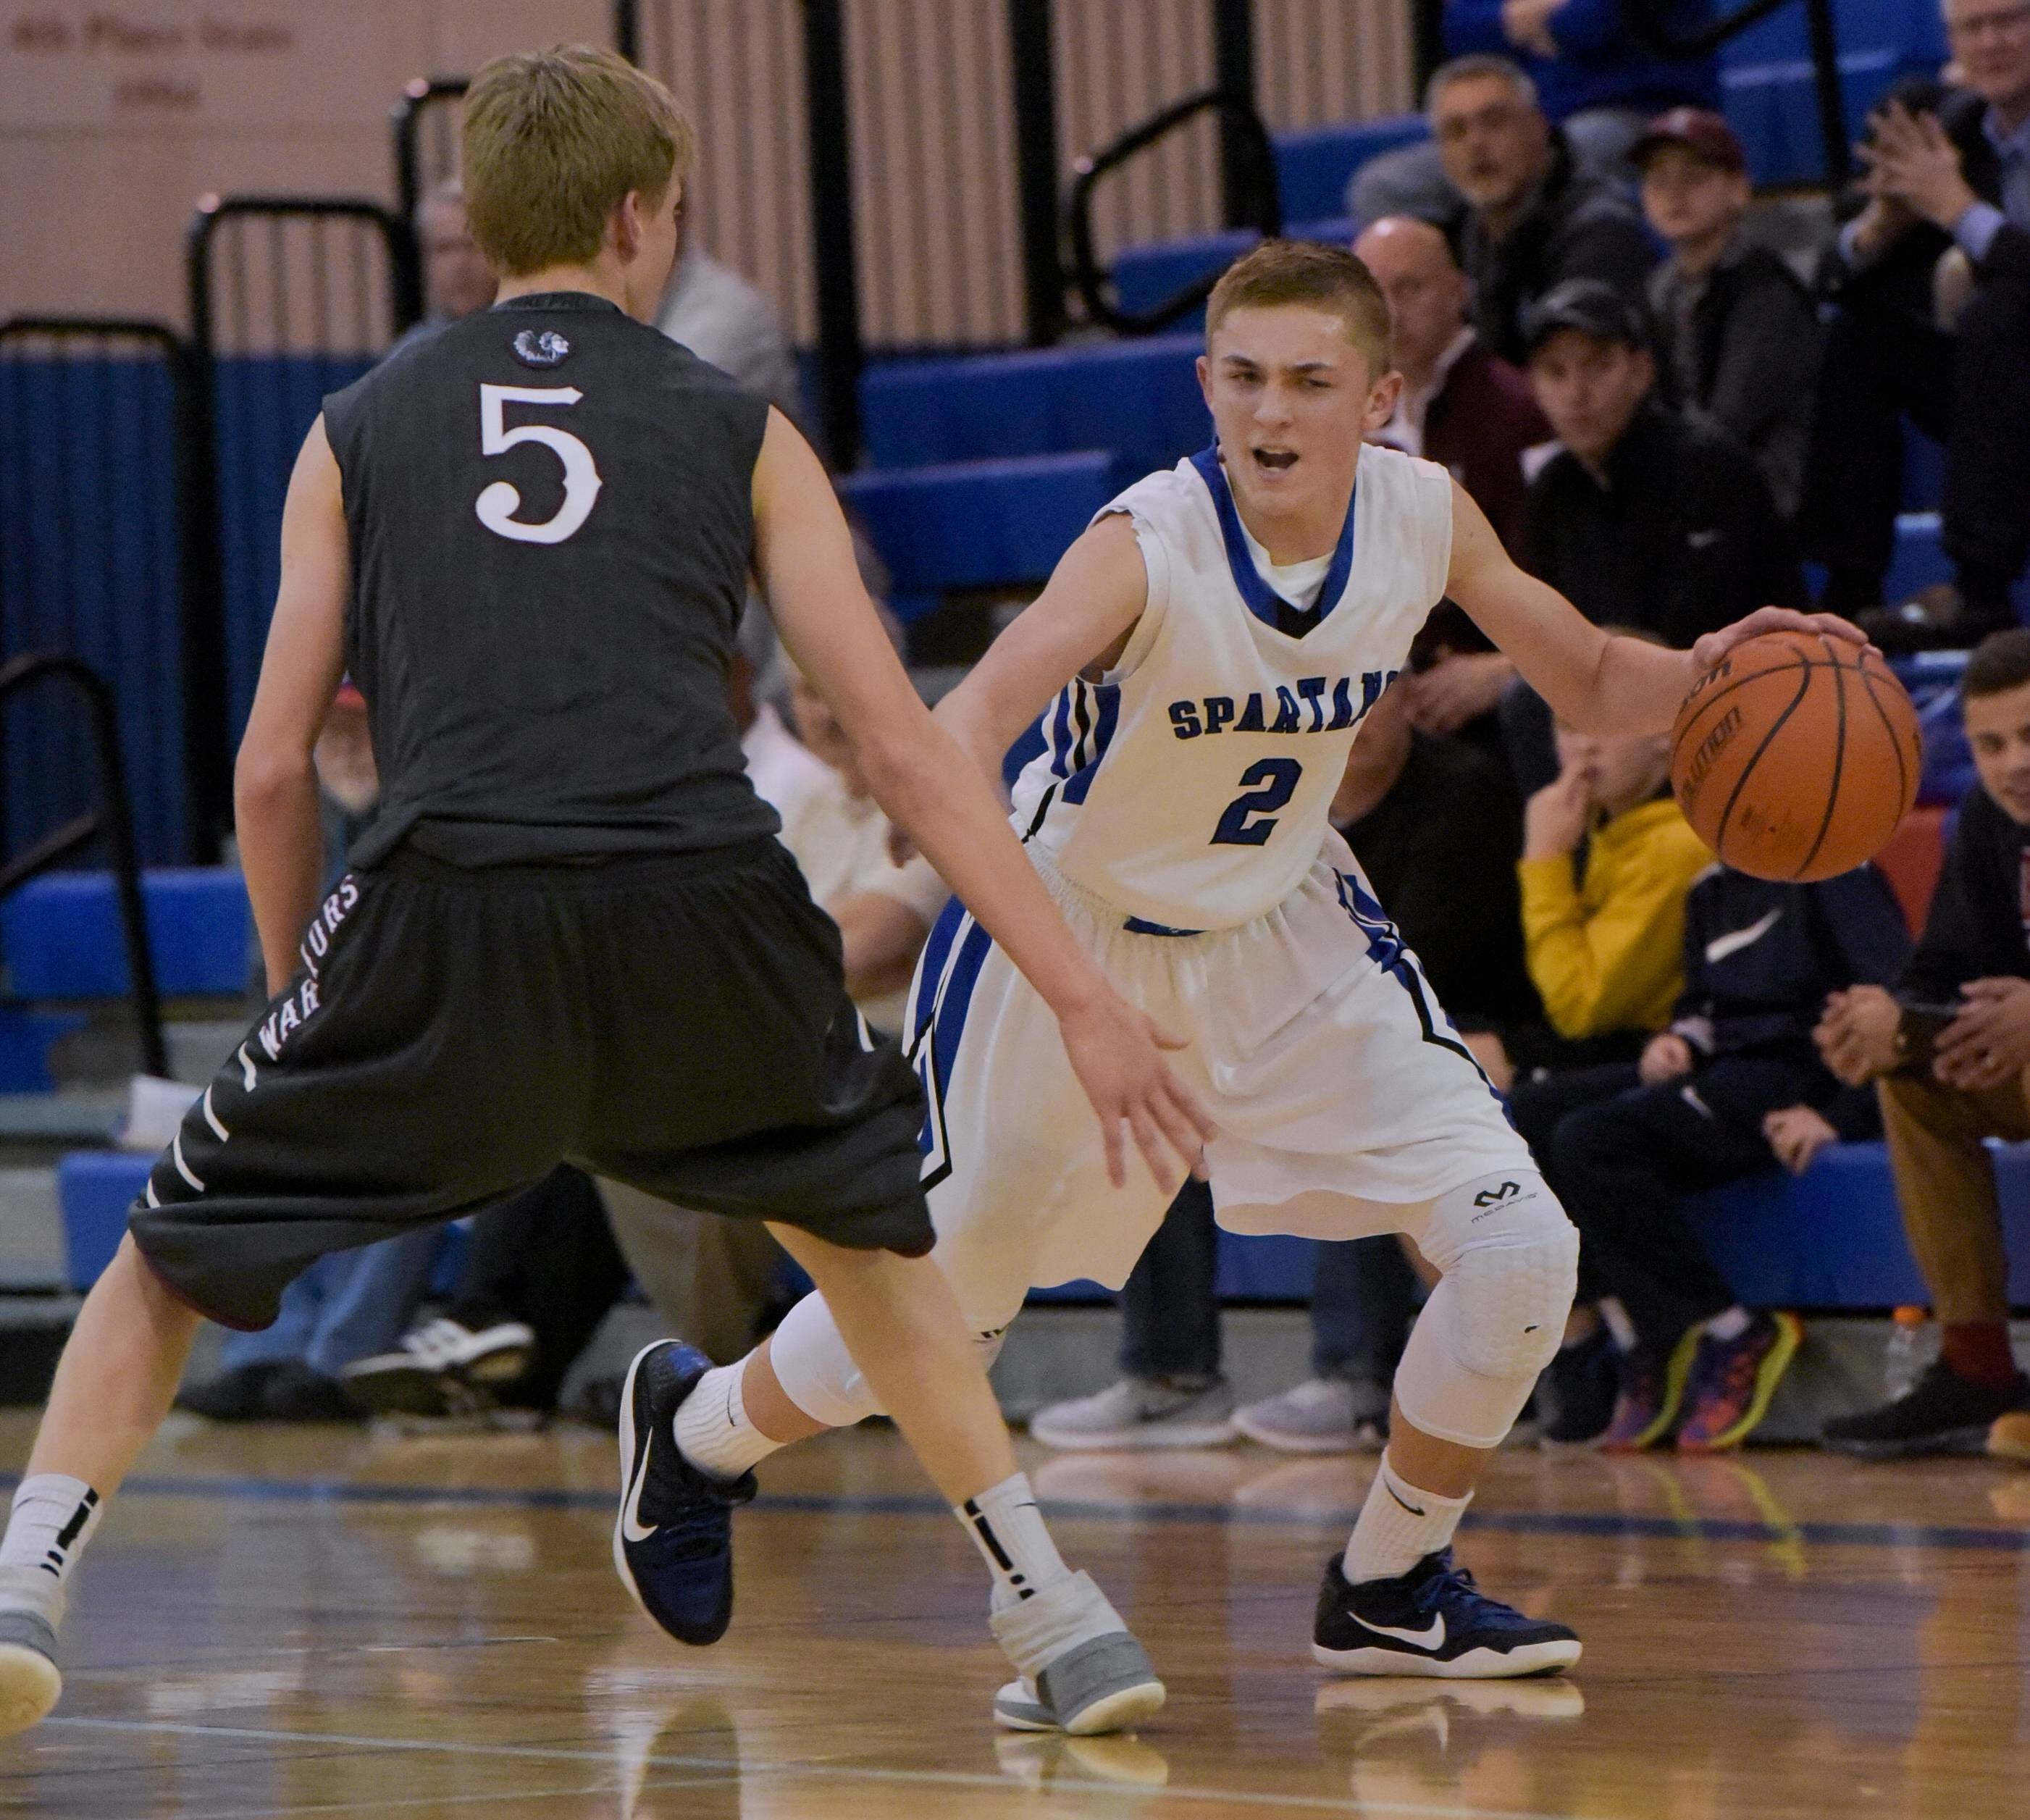 St. Francis' Matthew Cooney looks to move around Wheaton Academy's Marcus Bult during the Class 3A regional boys basketball game Monday at Marmion Academy.